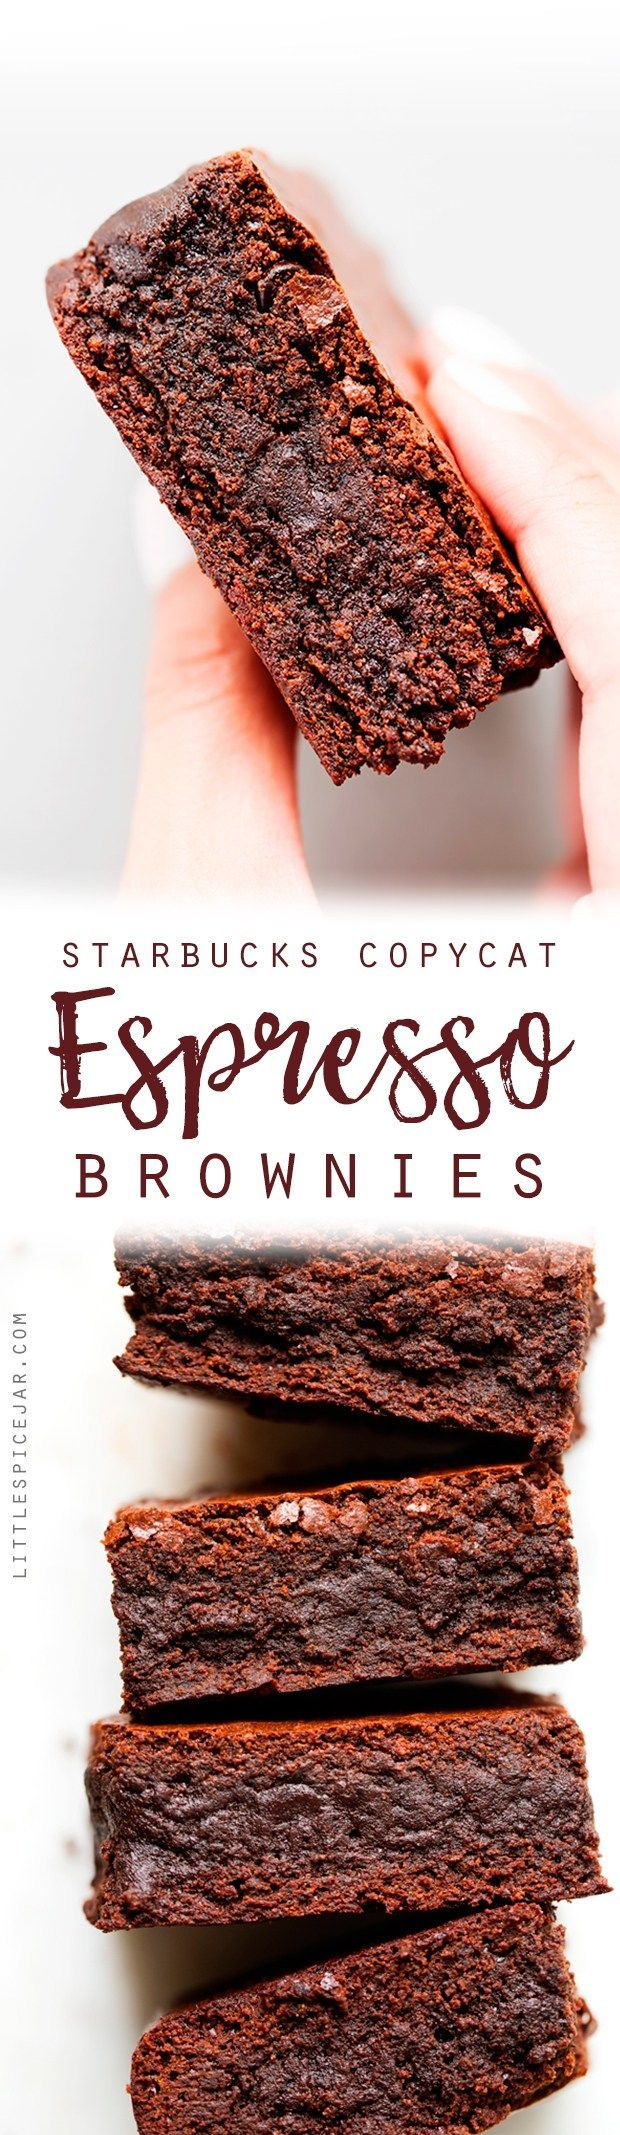 Starbucks Copycat Espresso Brownies - made with real ground espresso beans! These brownies are sooo fudgy! #brownies #starbucks #espressobrownies | http://Littlespicejar.com